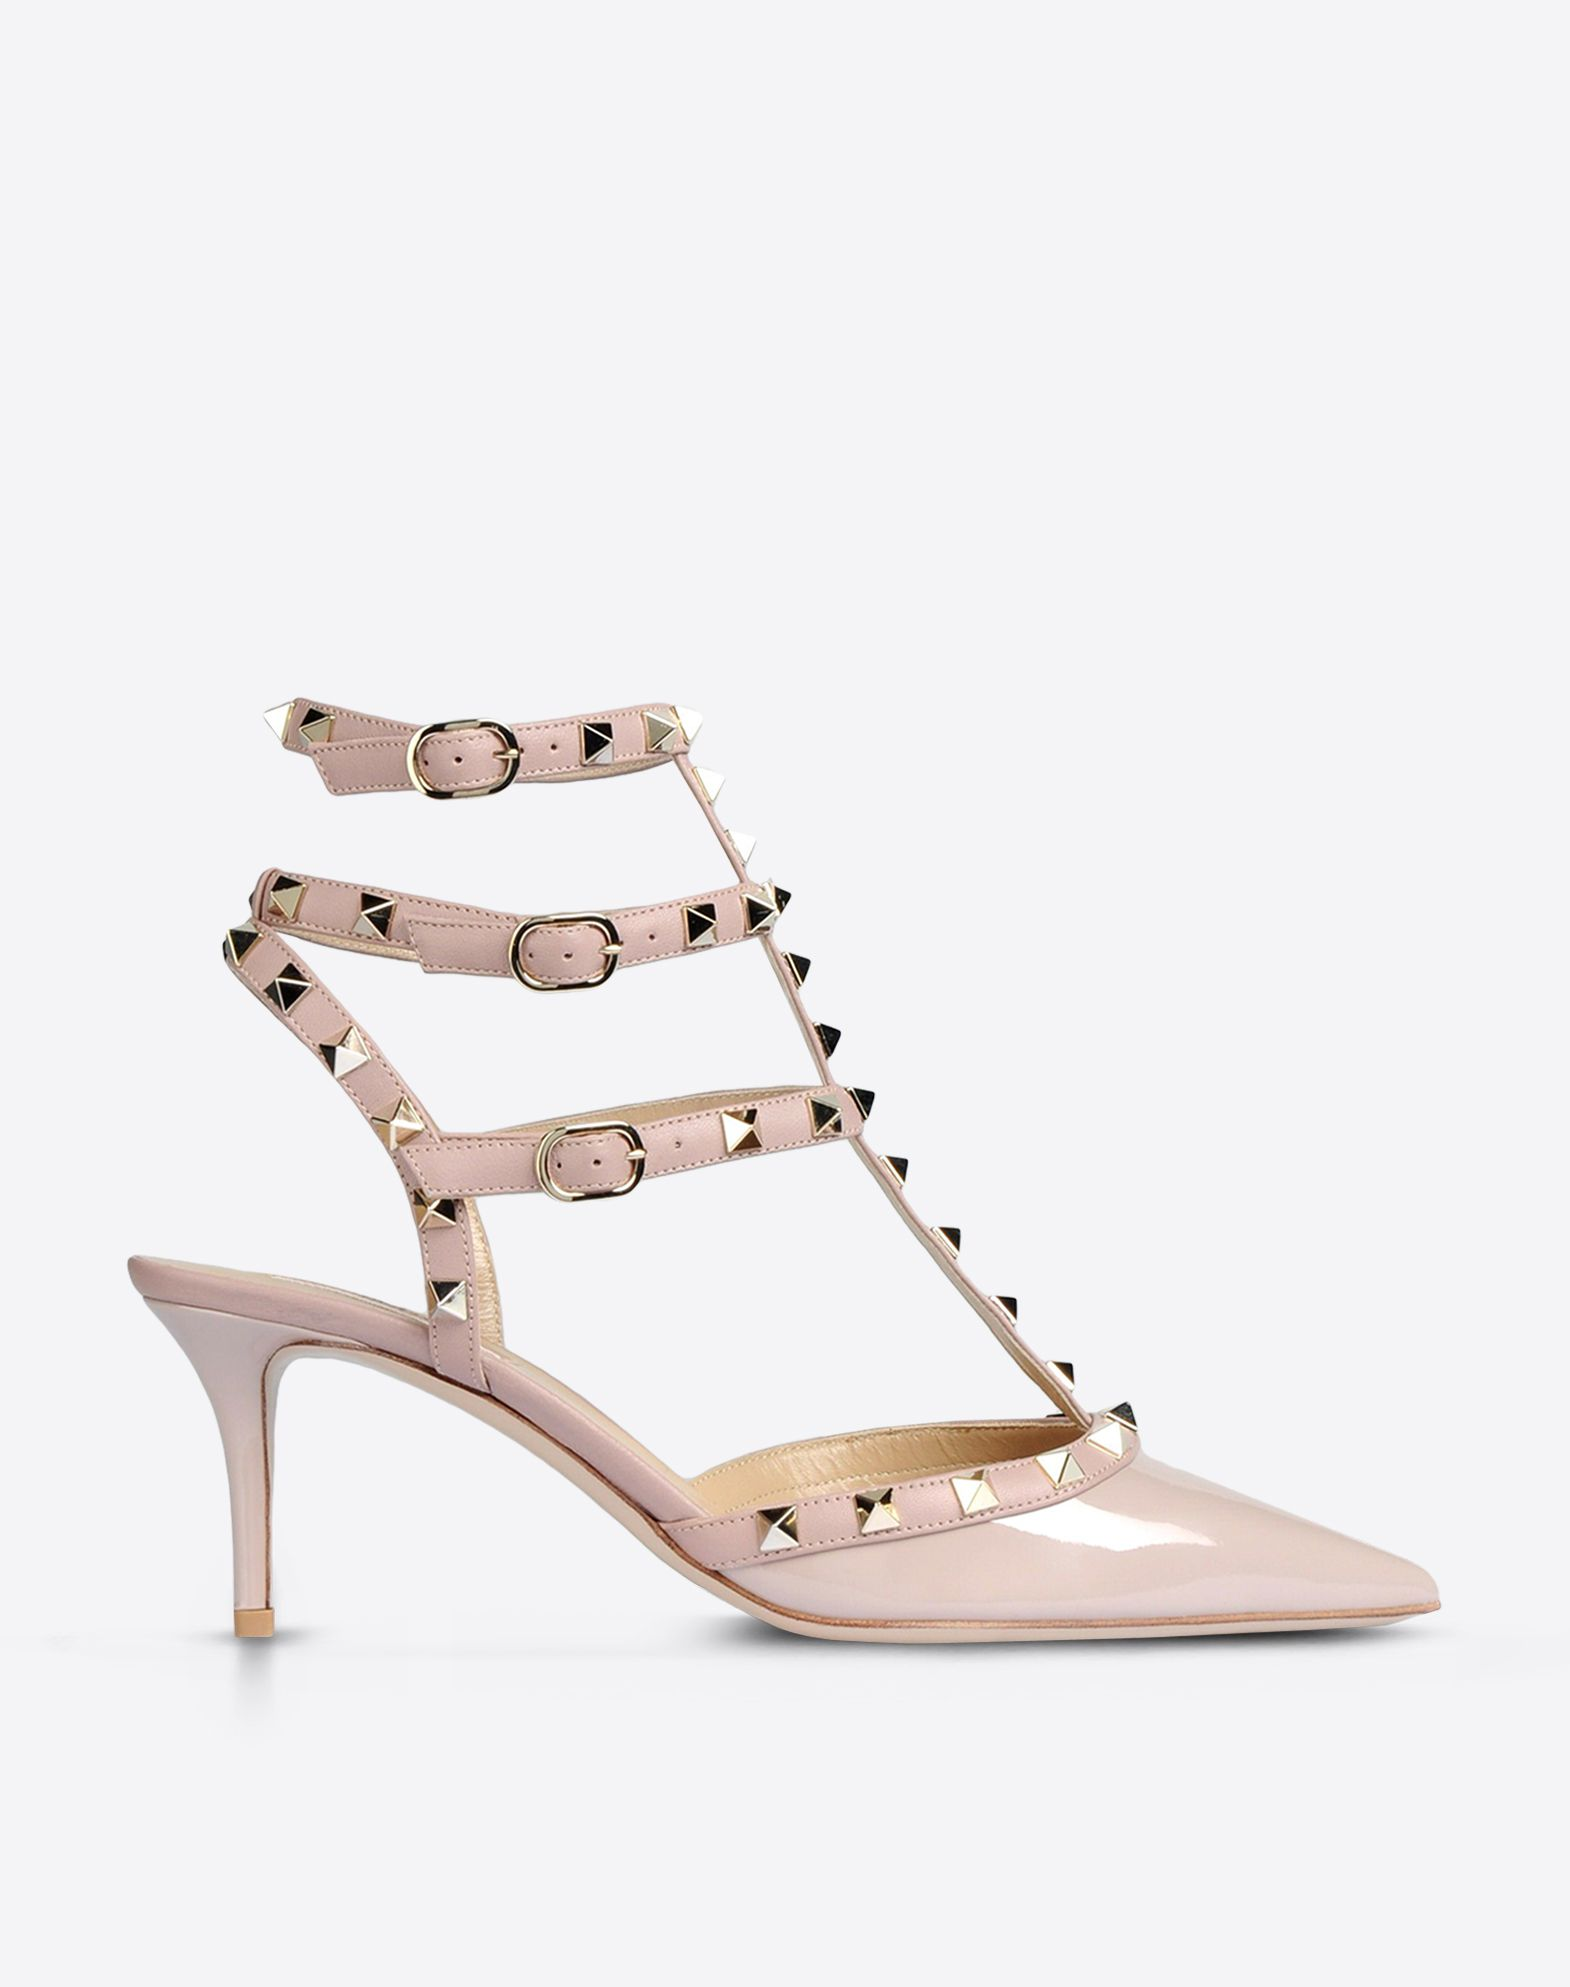 Valentino Garavani The Rockstud Patent-leather Pumps - Beige Valentino pe8yYOY